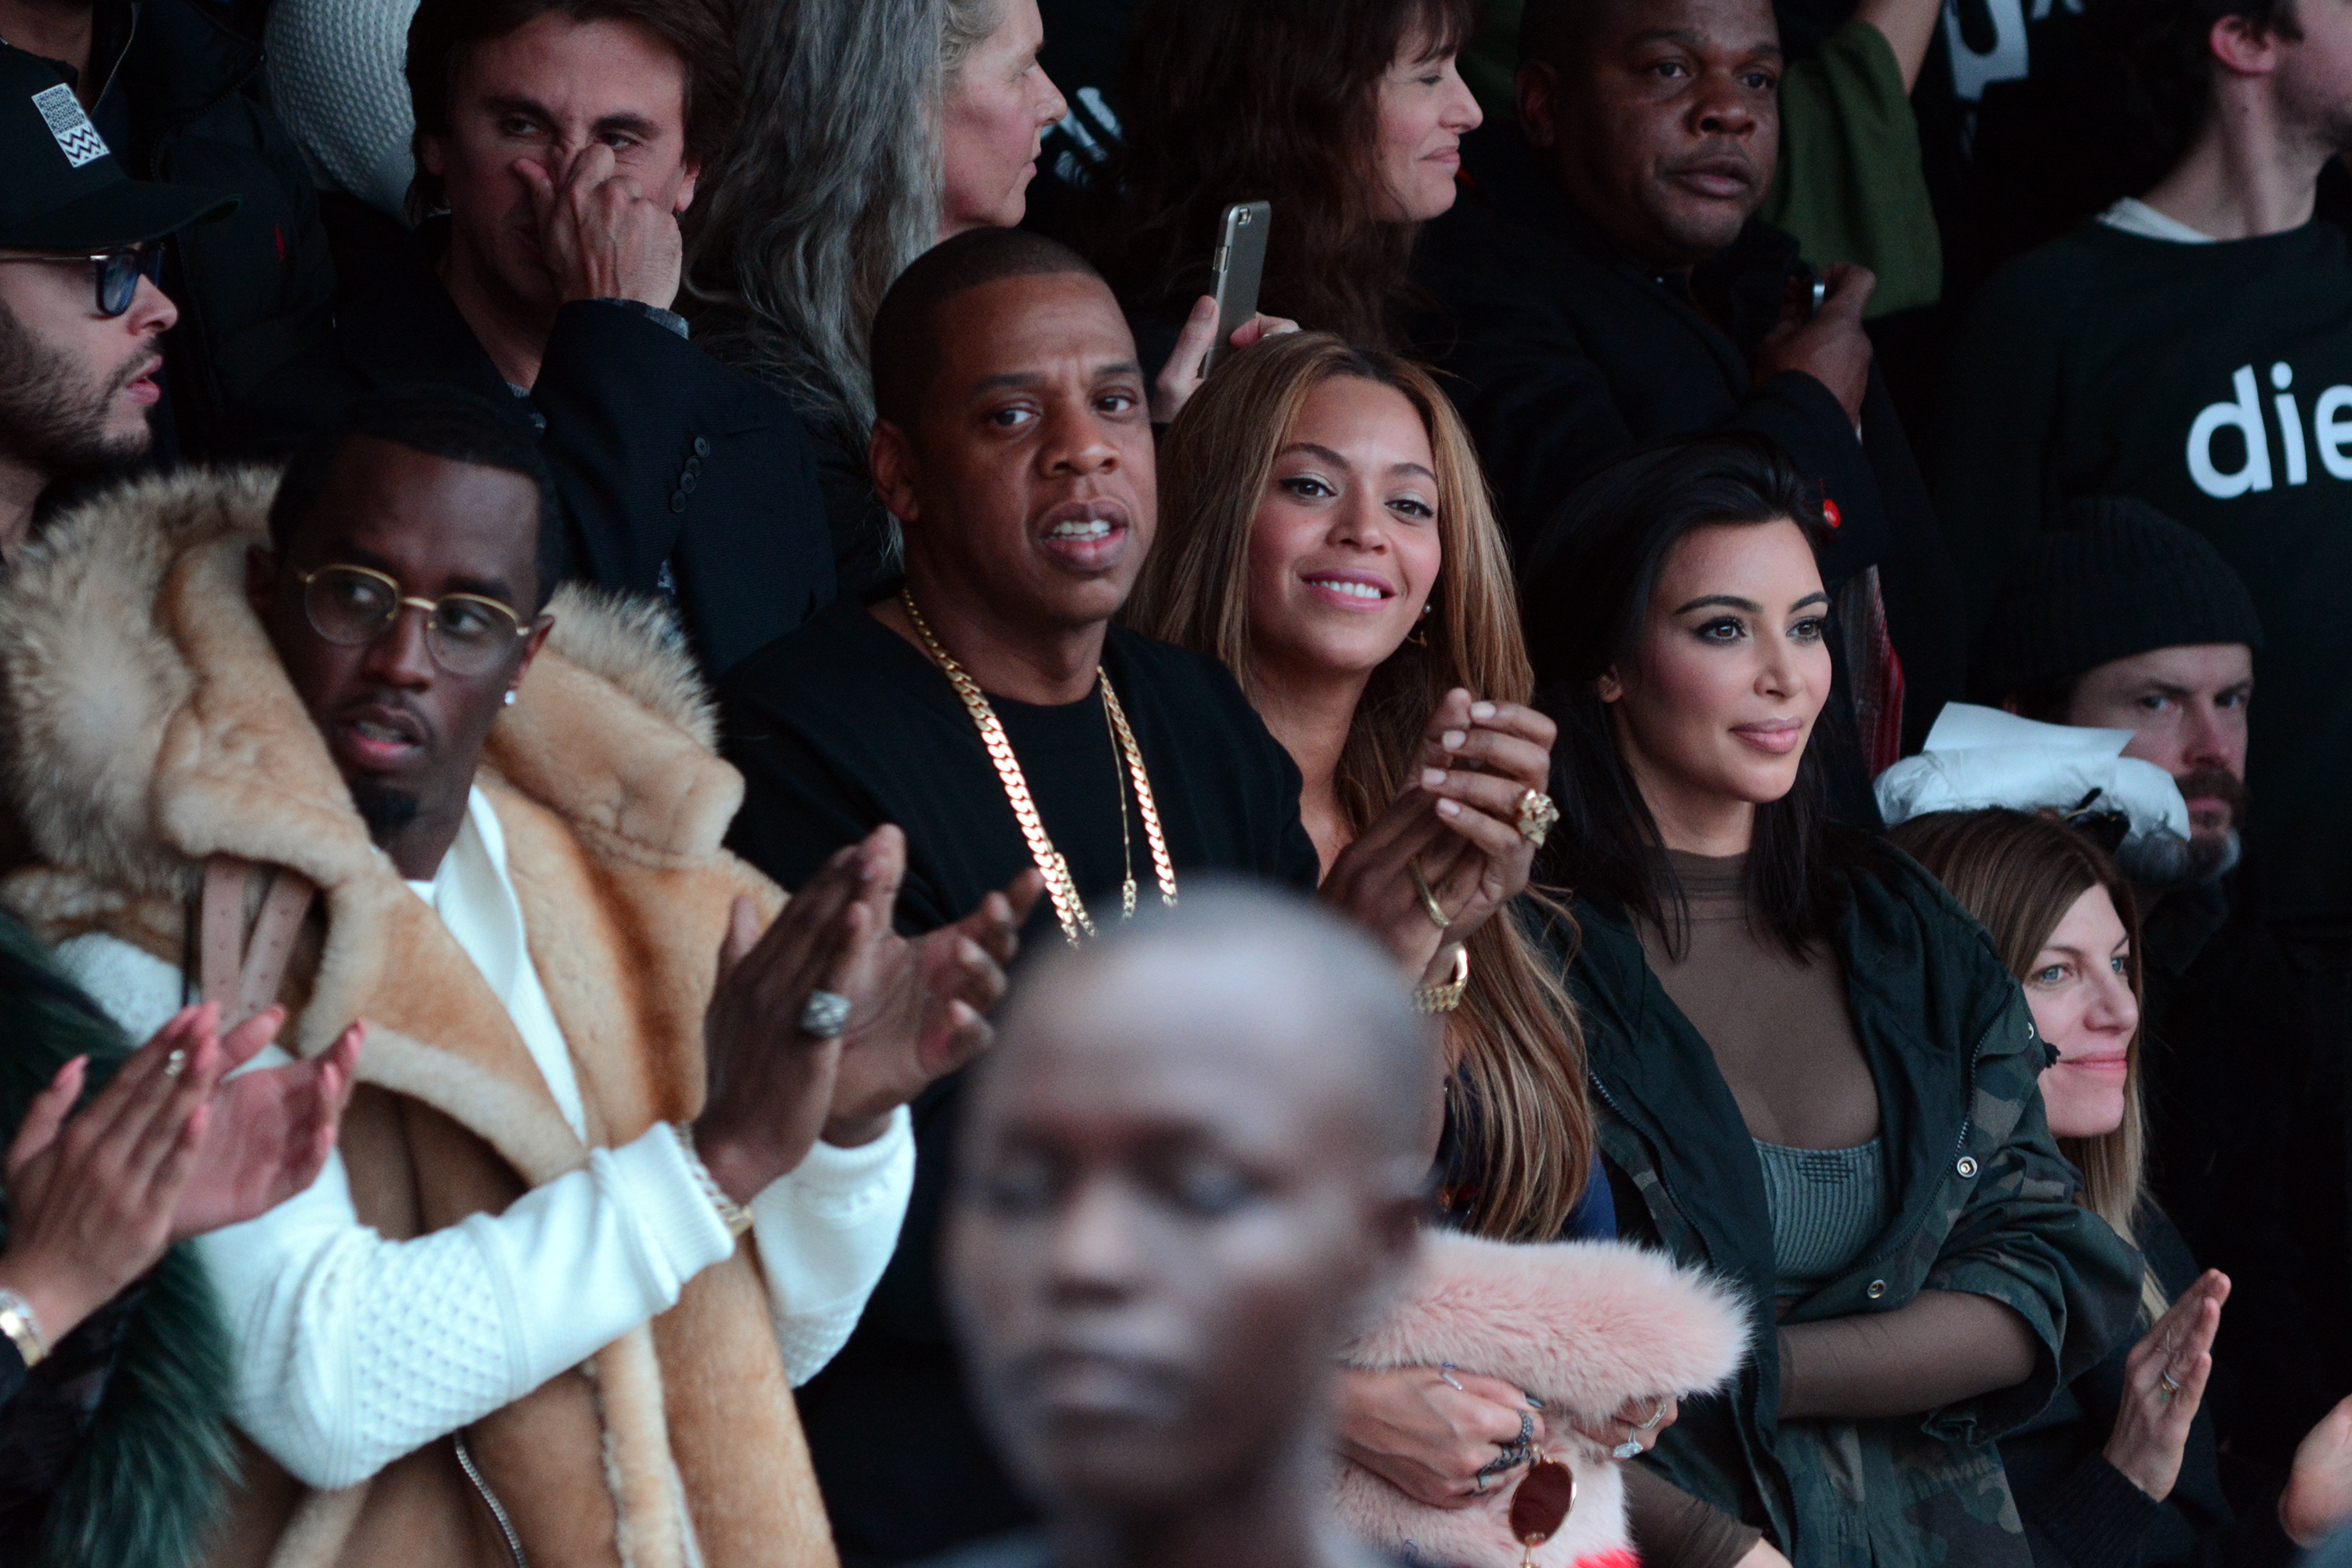 Mercedes Benz Fashion Week - Kanye West and Adidas Originals  - Inside  Featuring: Sean 'Diddy' Combs, Jay-Z, Beyonce, Kim Kardashian Where: New York City, New York, United States When: 12 Feb 2015 Credit: Ivan Nikolov/WENN.com